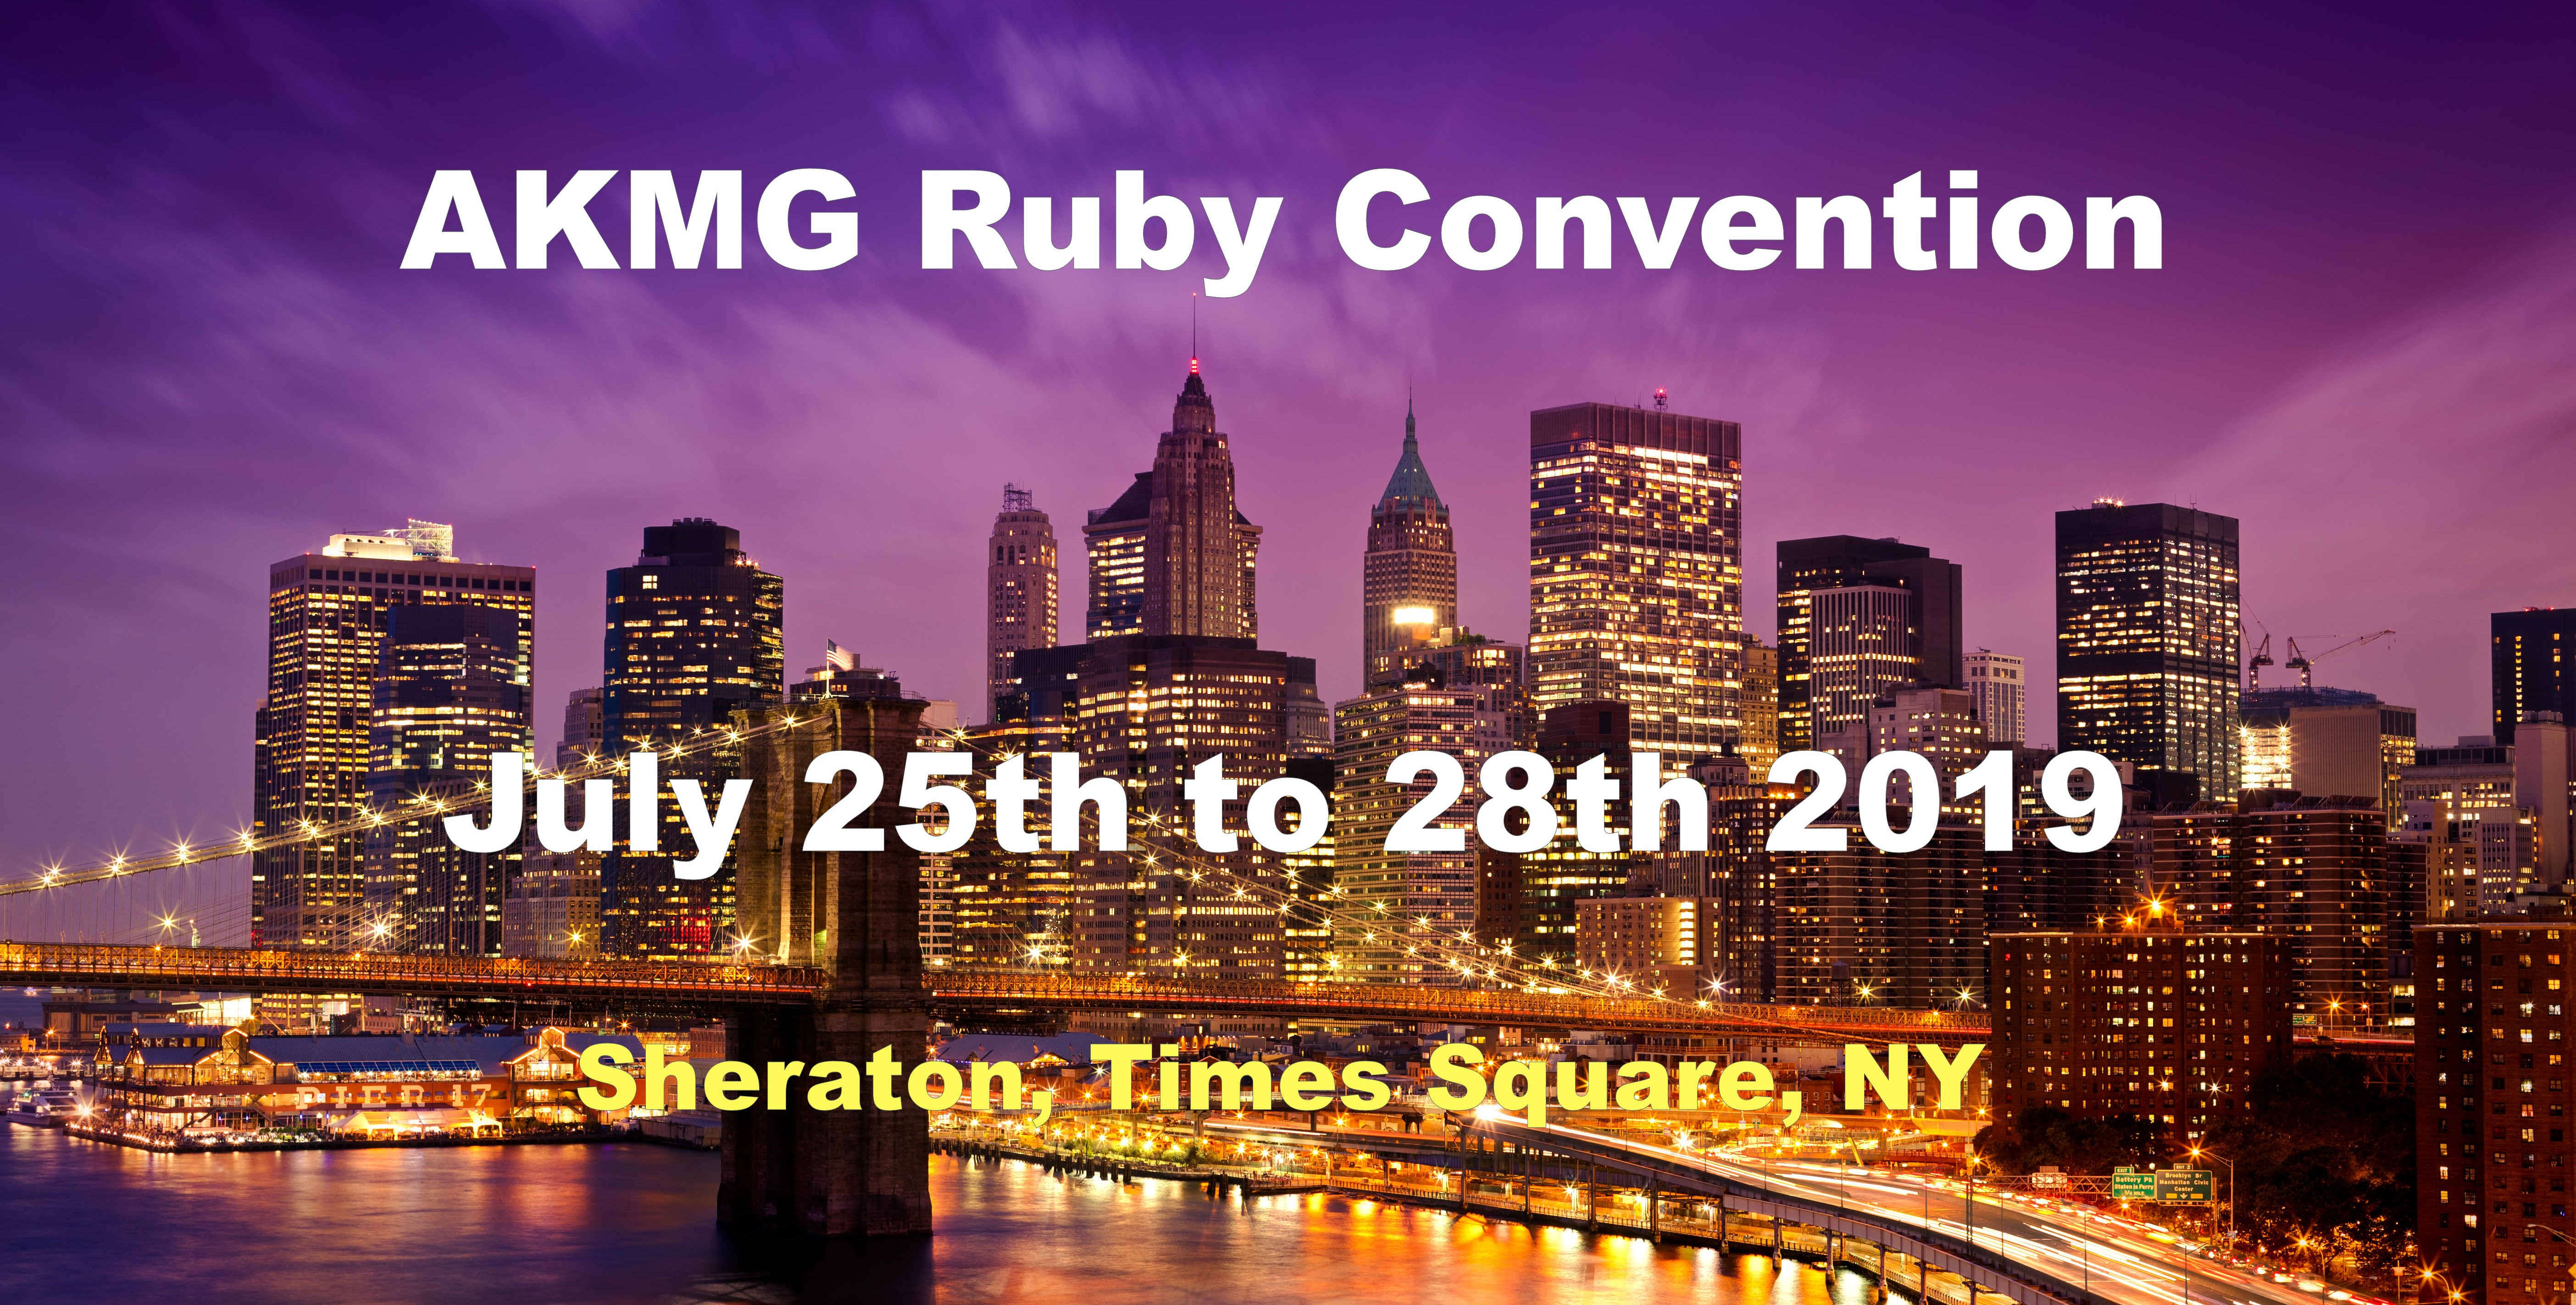 AKMG Ruby Convention 2019